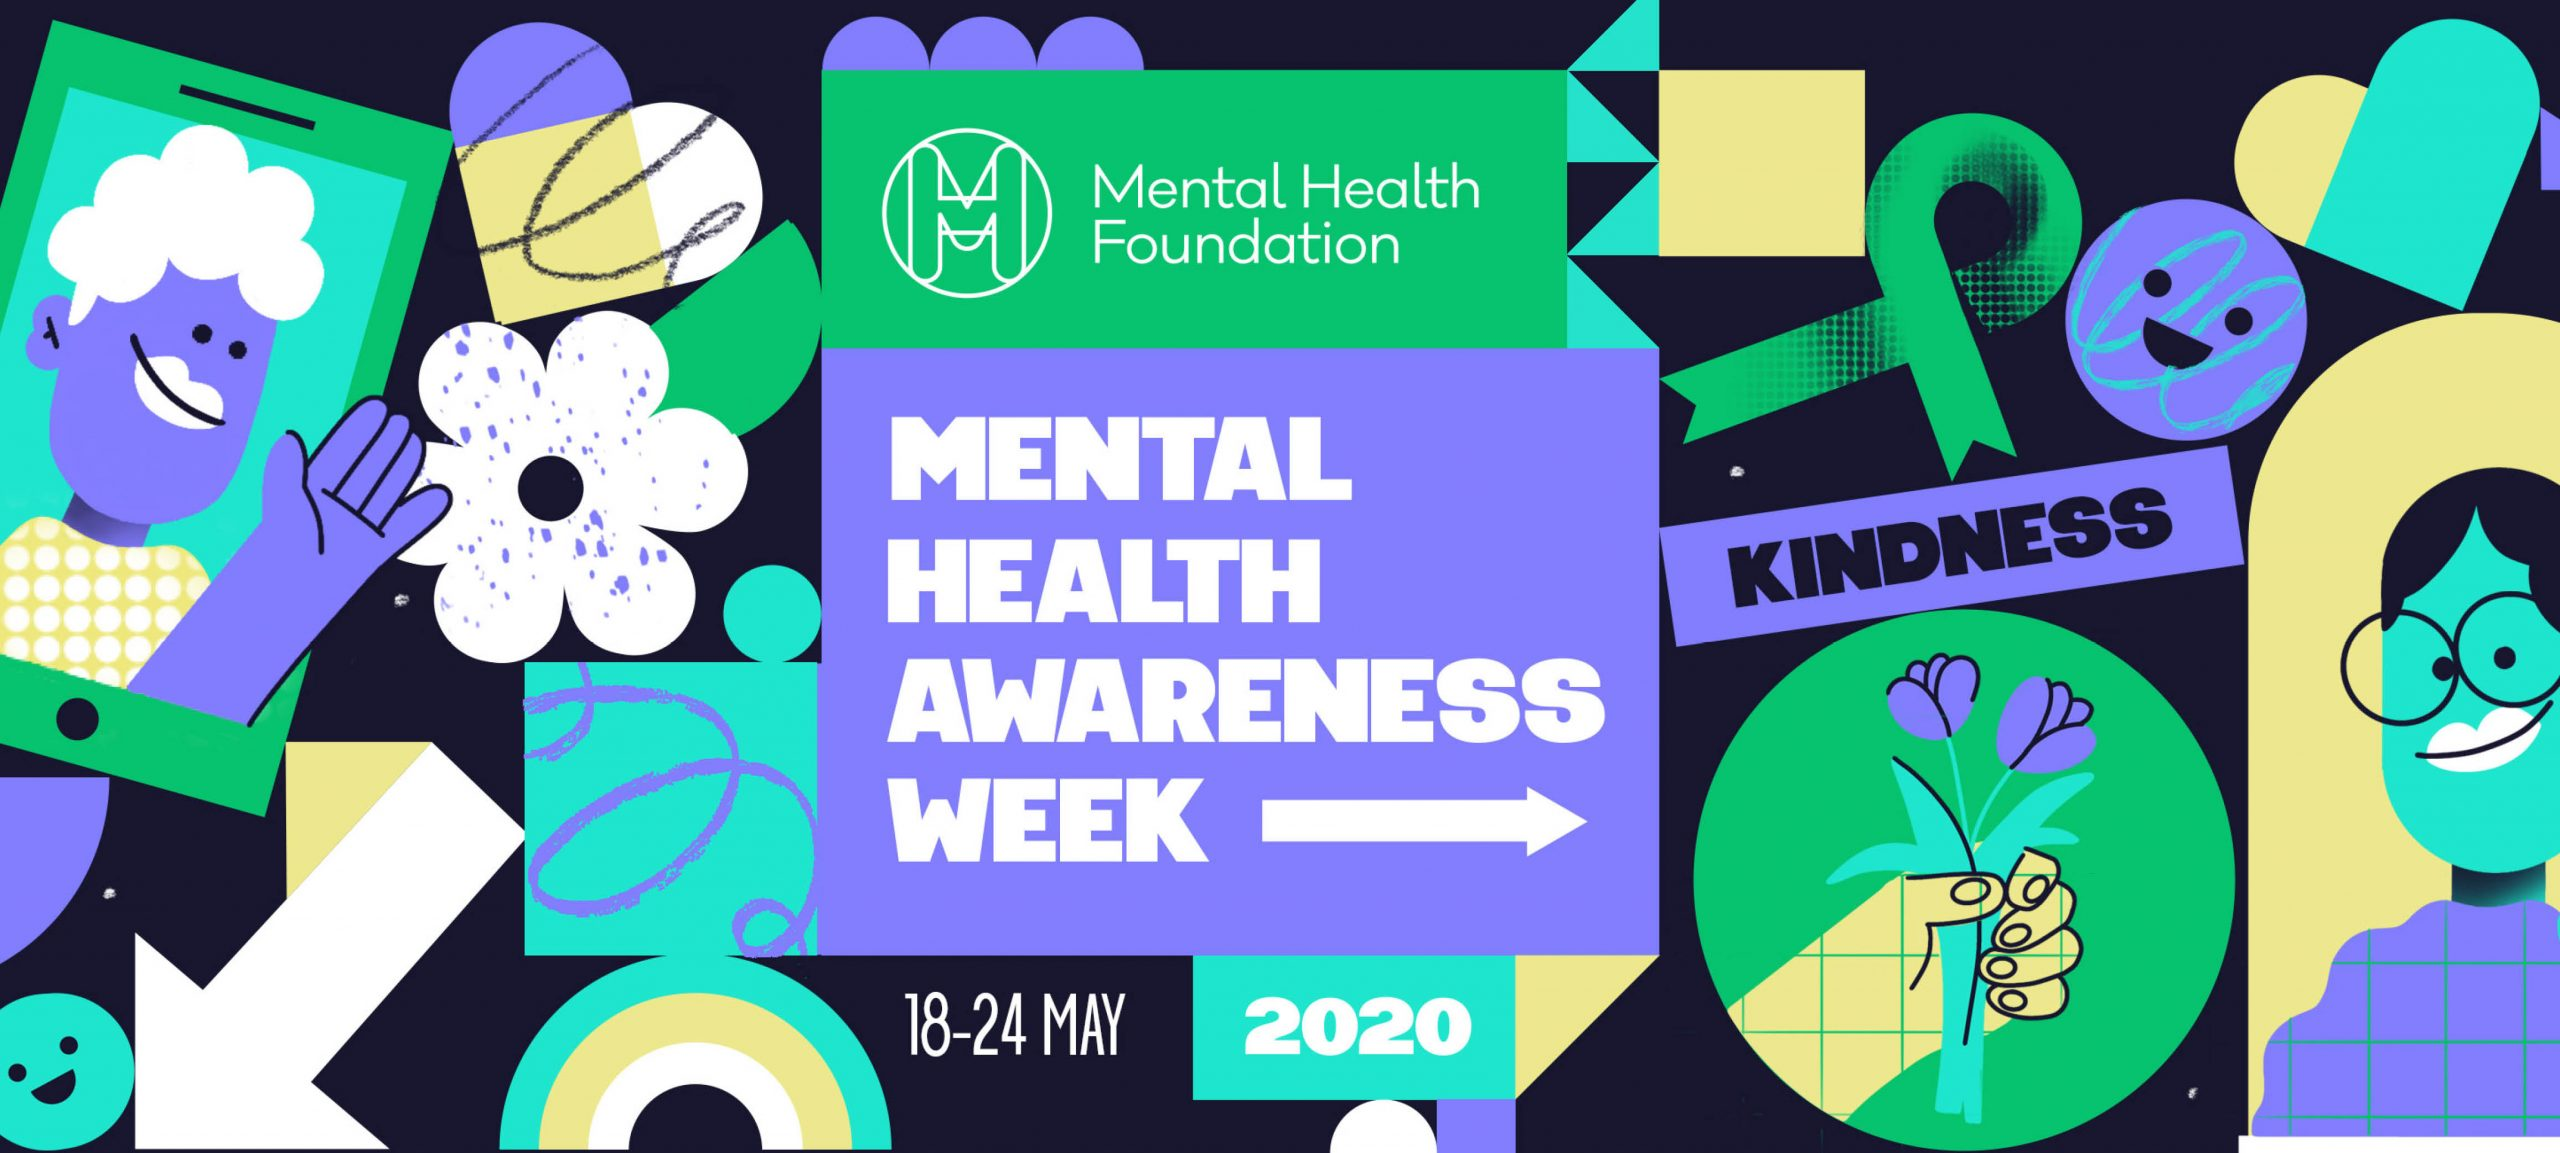 Getting involved this Mental Health Awareness Week